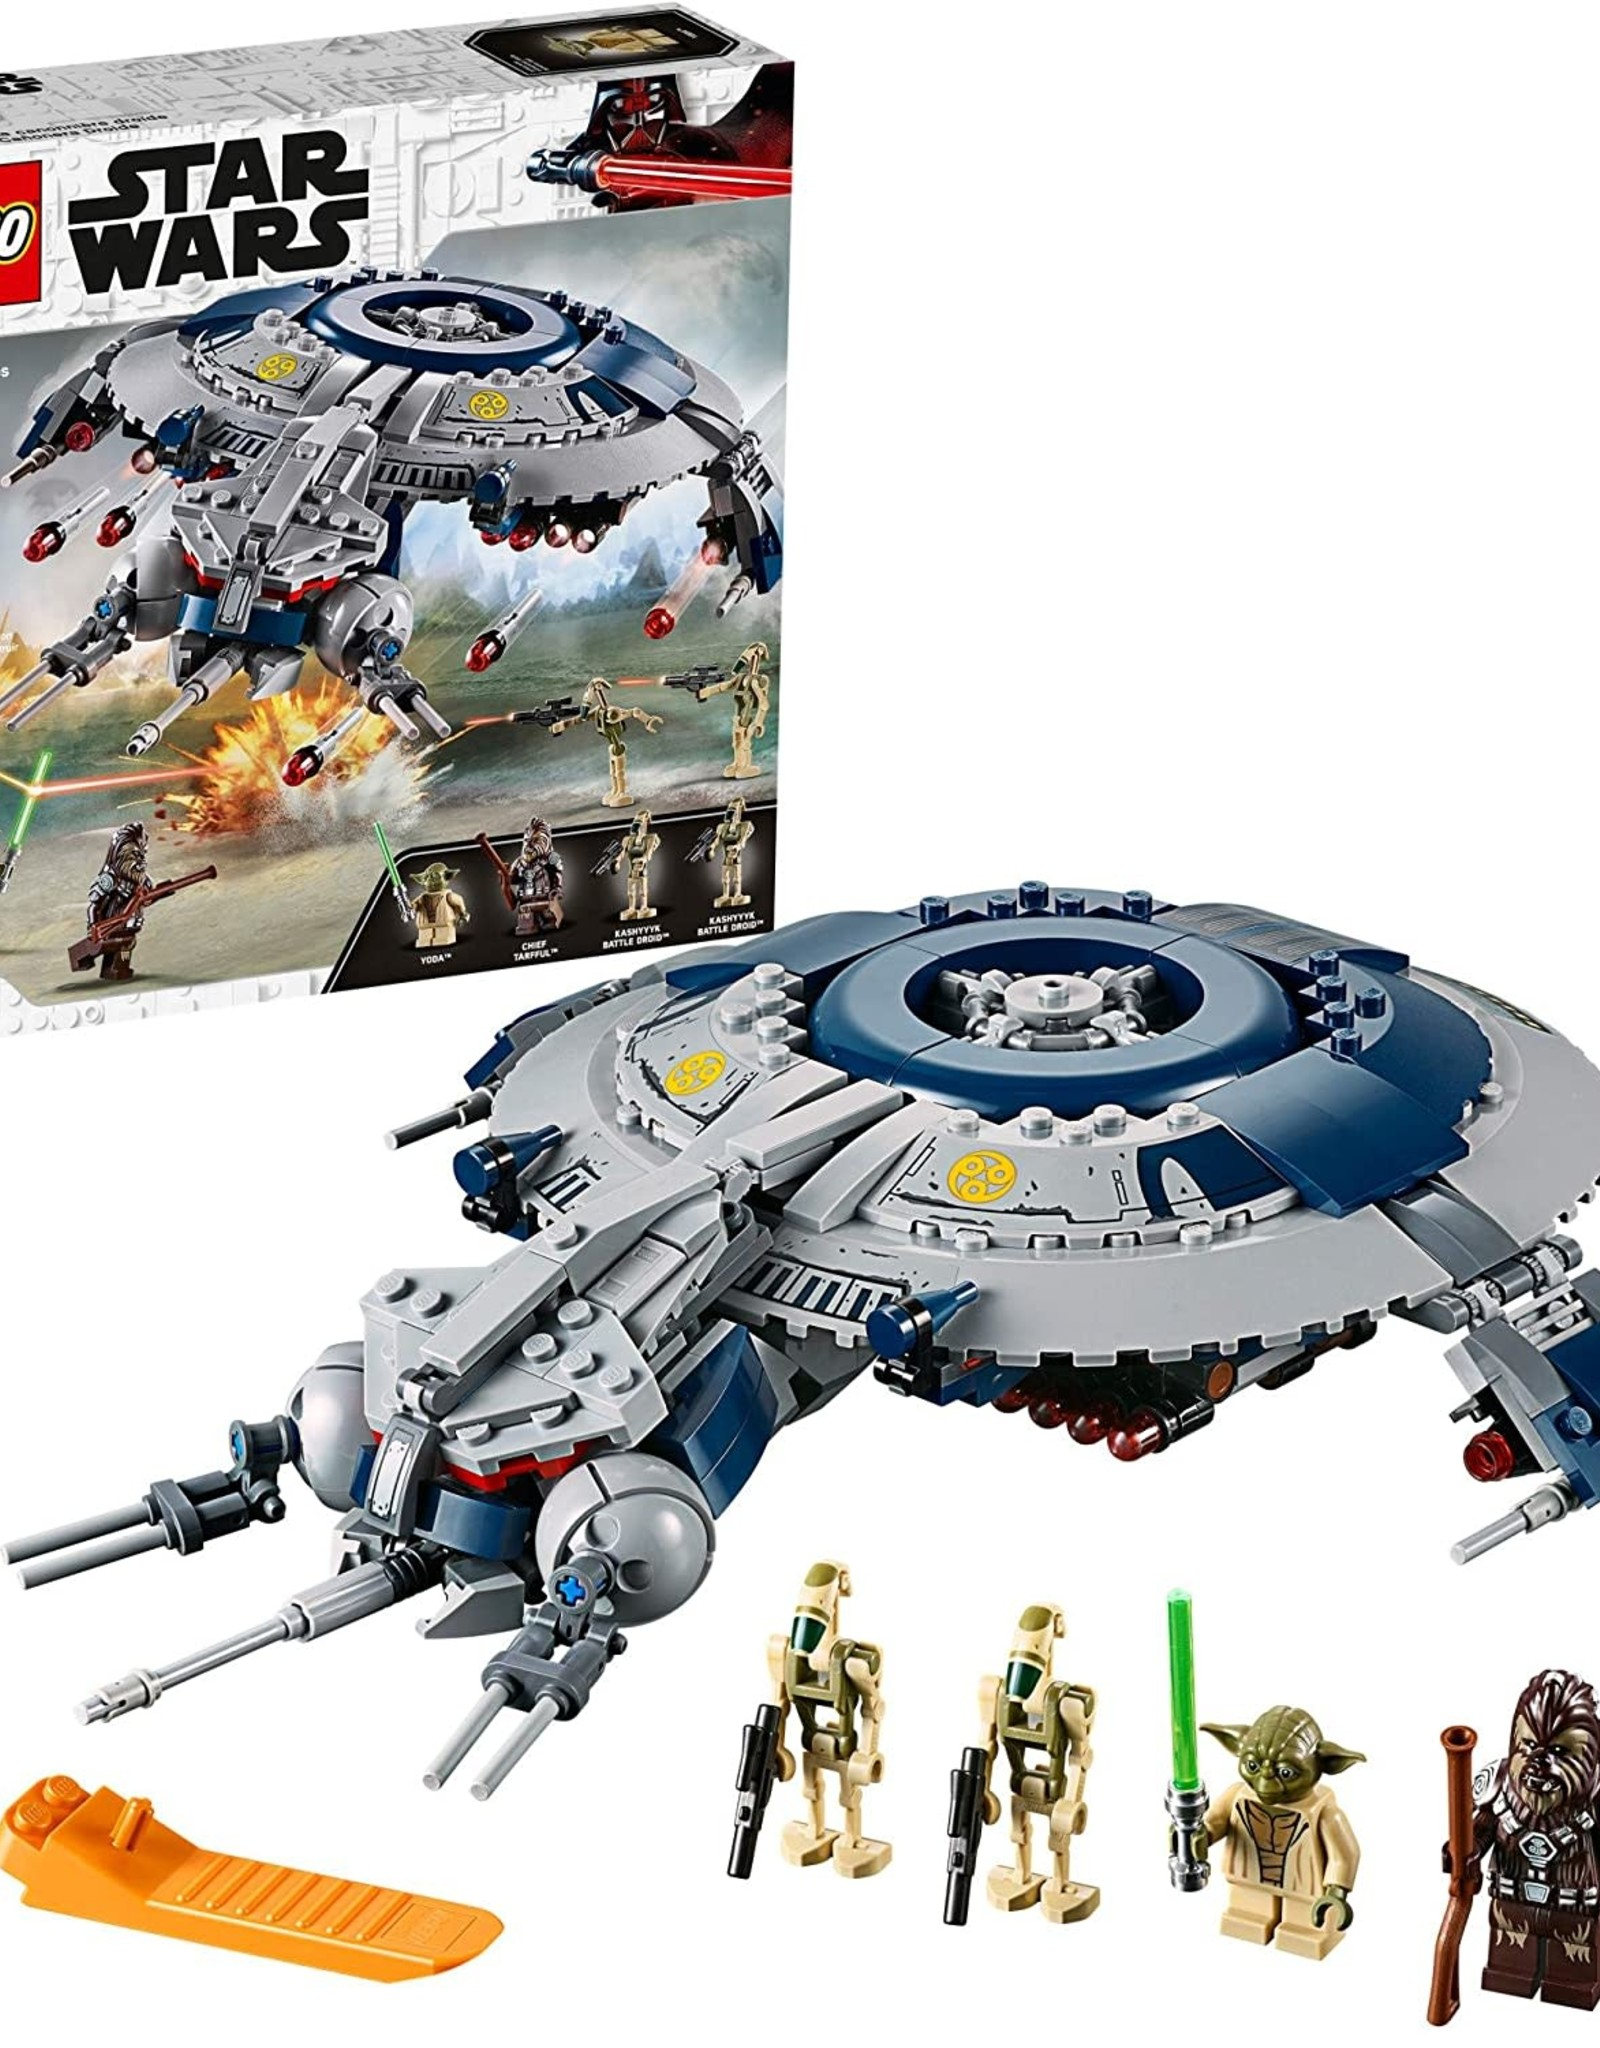 Droid Gunship LEGO Star Wars: The Revenge of the Sith Droid Gunship